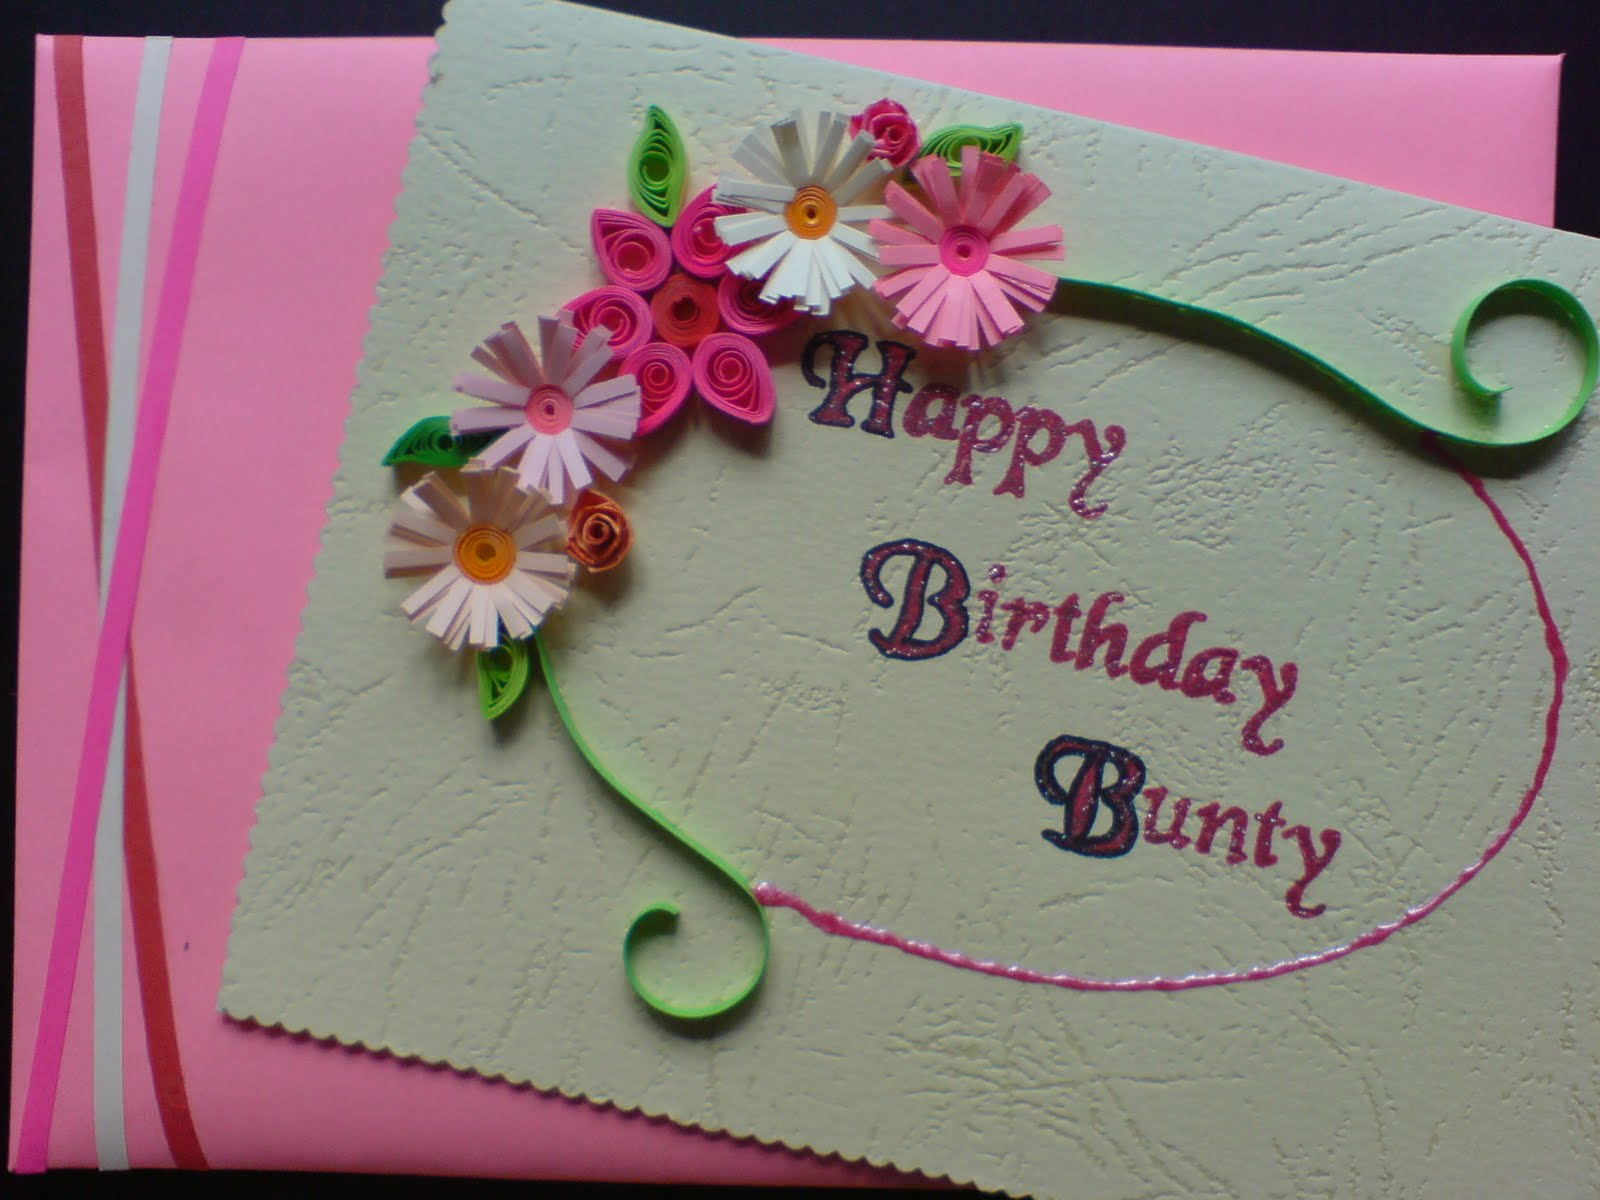 making birthday greeting cards at home ; new-Handmade-Birthday-Cards-Designs